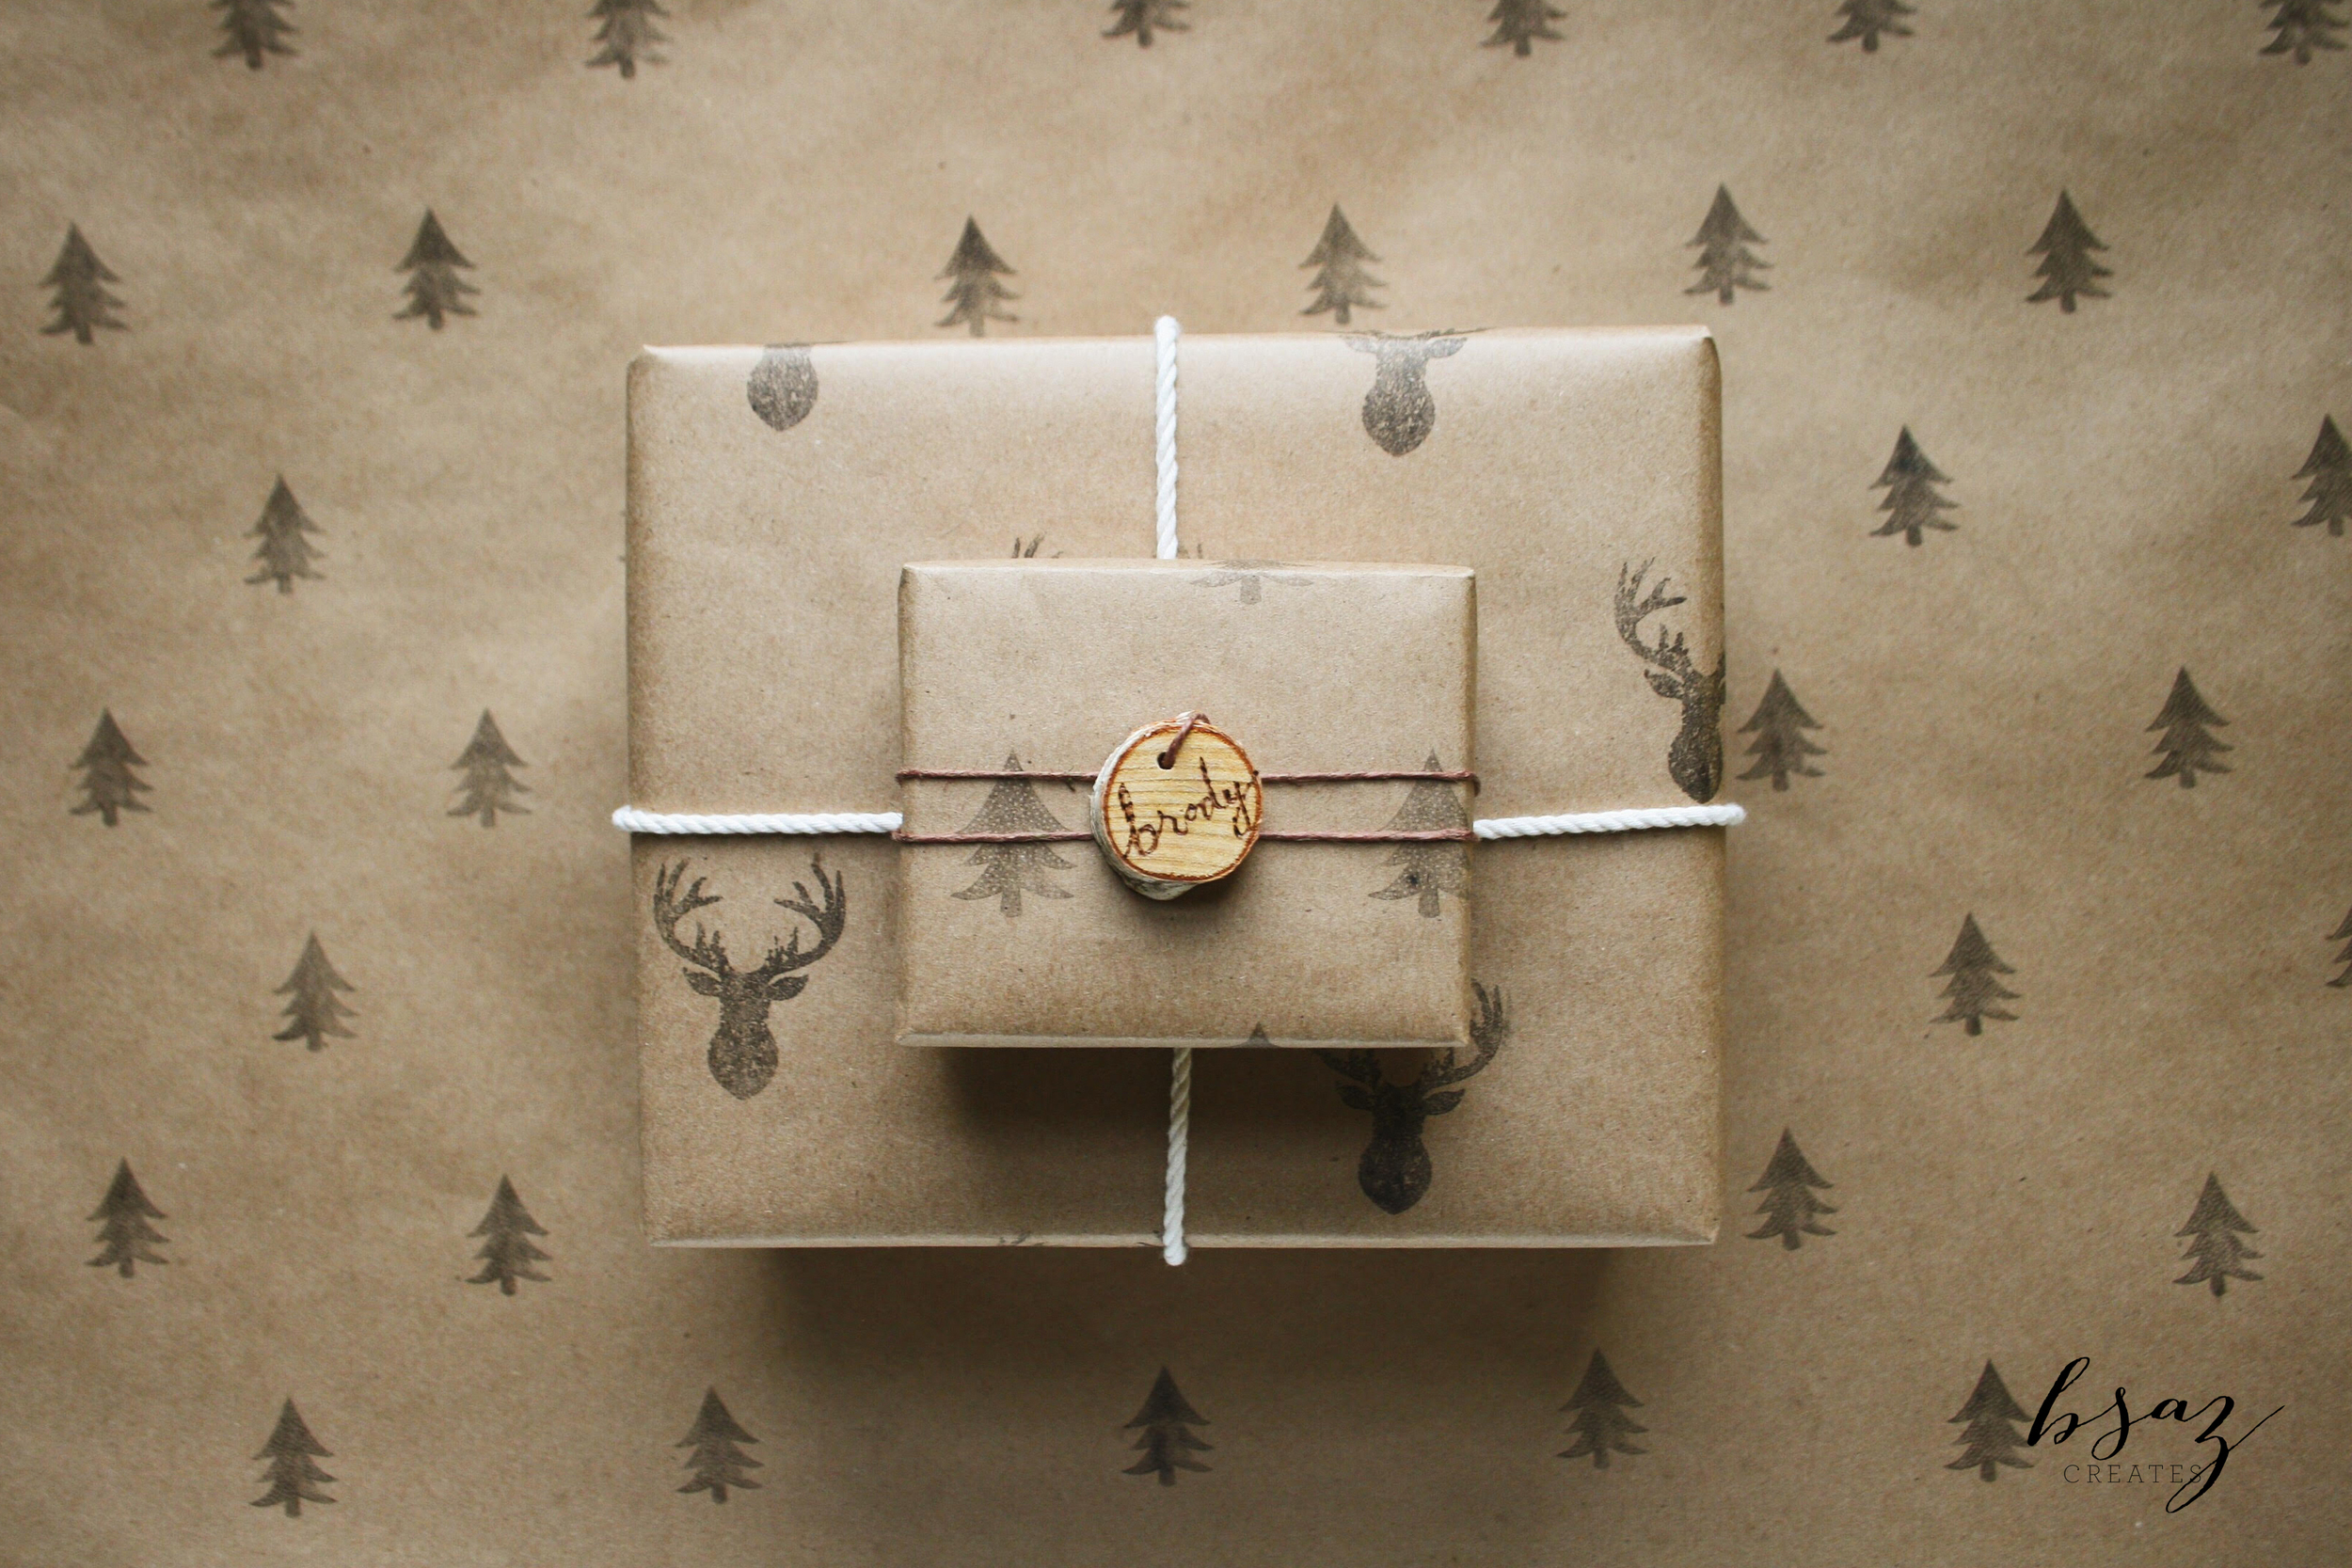 BSaz Creates | Stamped Wrapping Paper with Silhouette Mint